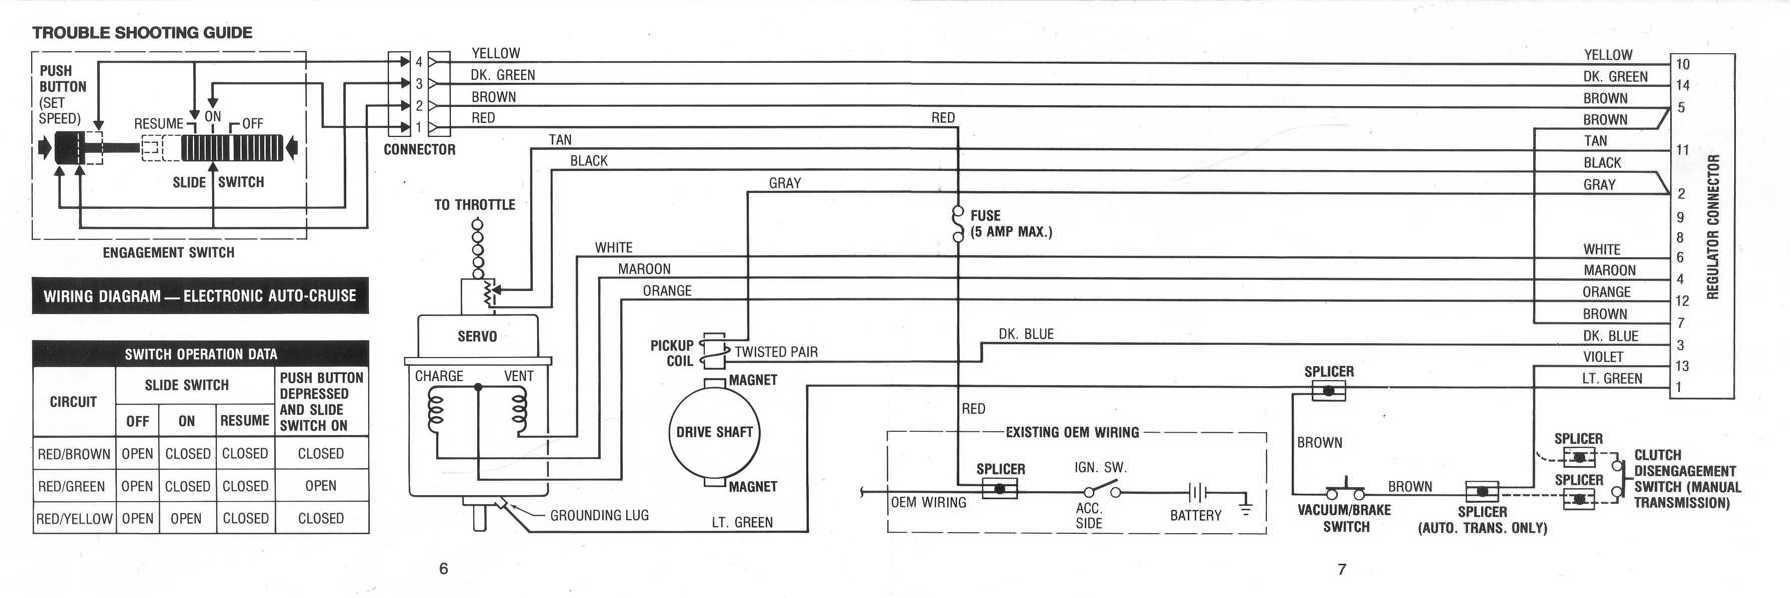 1977 04 vw t2 auto cruise wiring diagram?resize=665%2C222 zig unit wiring diagram wiring diagram zig unit wiring diagram at gsmx.co